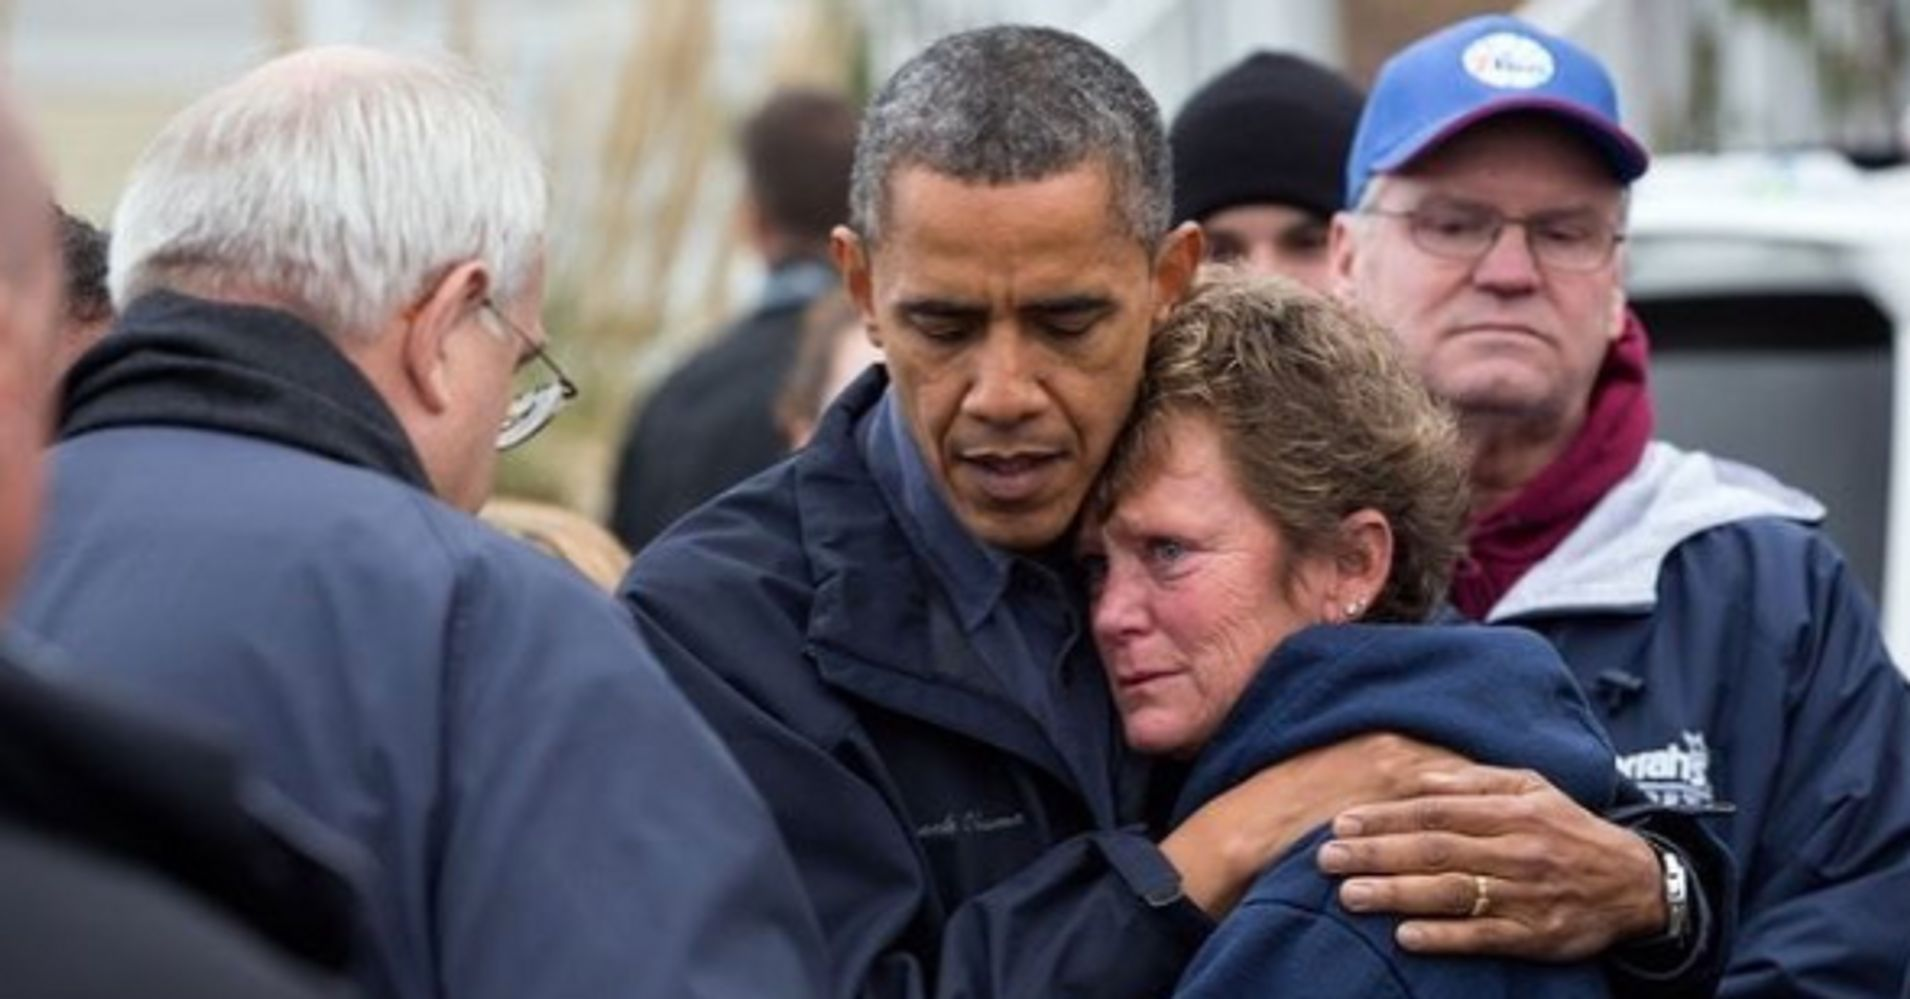 Obama Photographer Reminds Us How President Should Act During Disasters